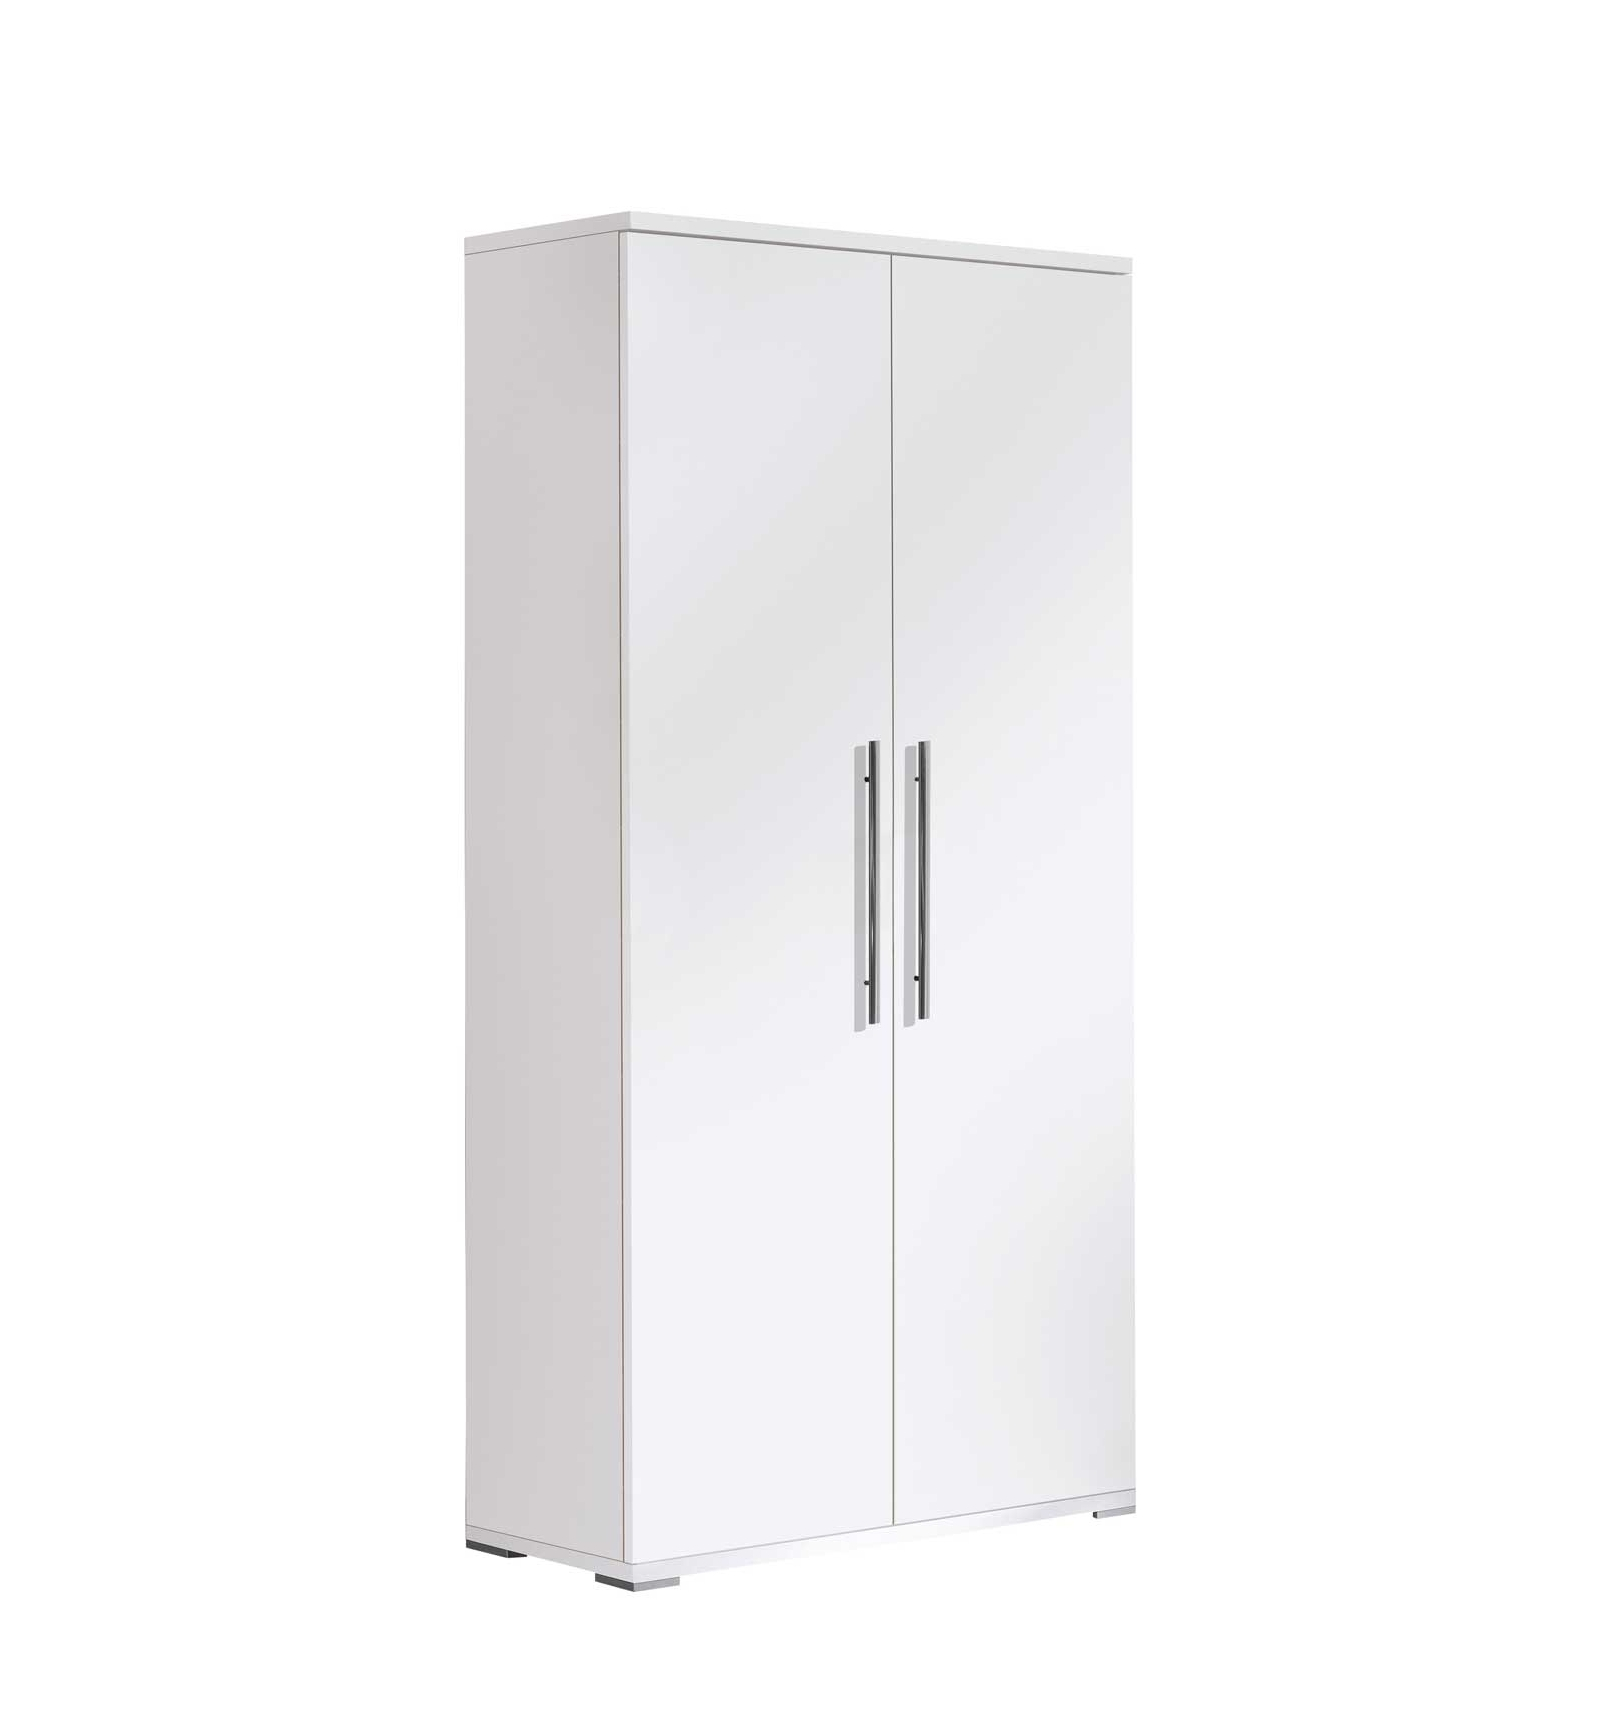 cool meuble chaussures grande armoire chaussures cambrian armoire armoire en mlamine armoire auxiliaire blenc with meuble a chaussures grande contenance